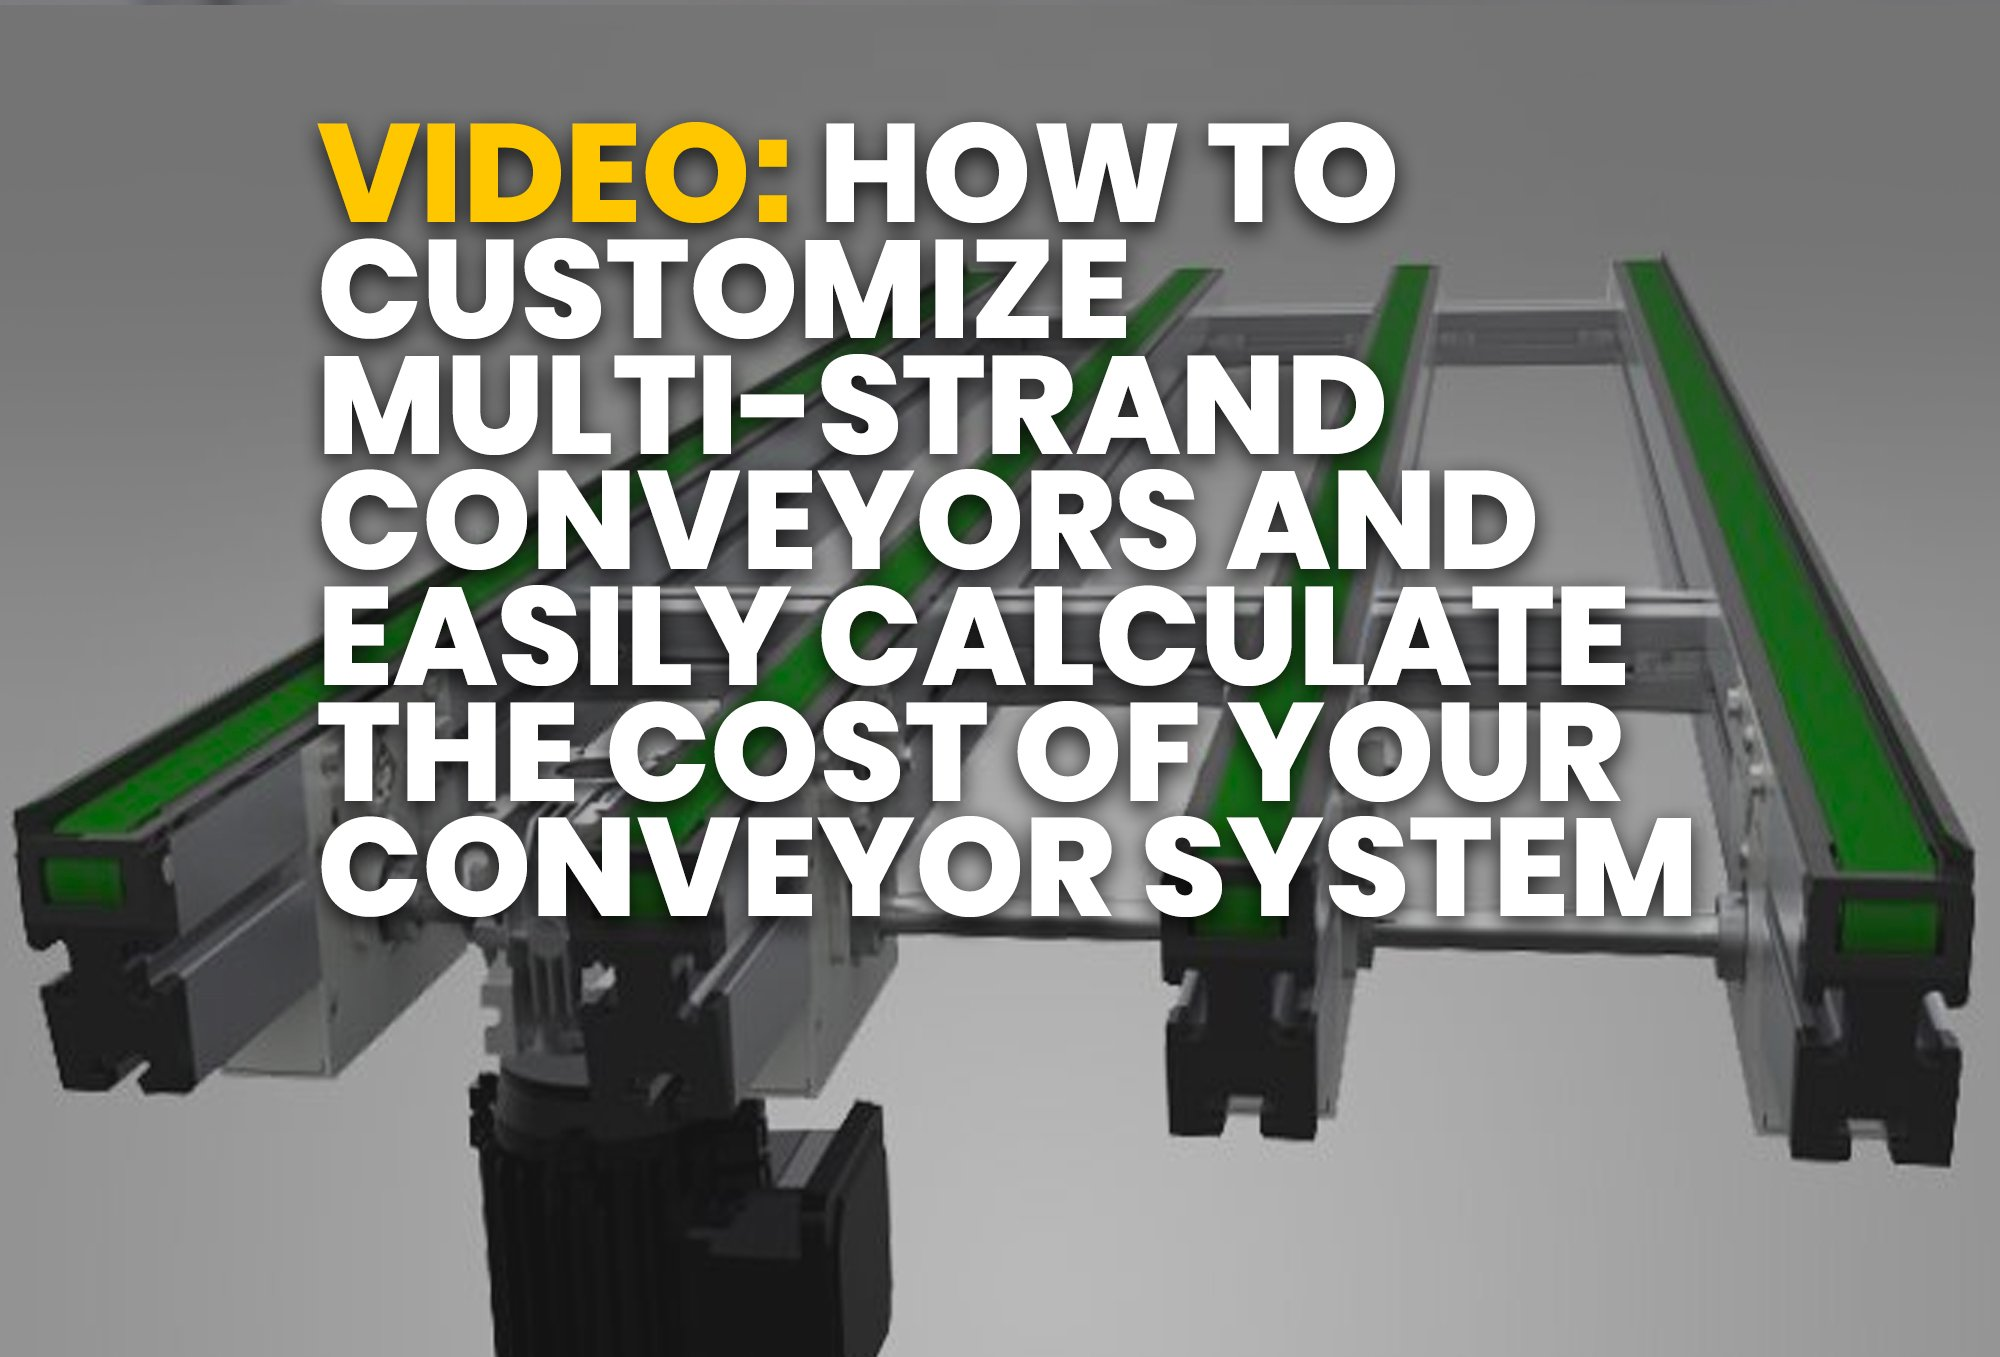 How To Customize Multi-Strand Conveyors And Easily Calculate The Cost Of Your Conveyor System - Resource